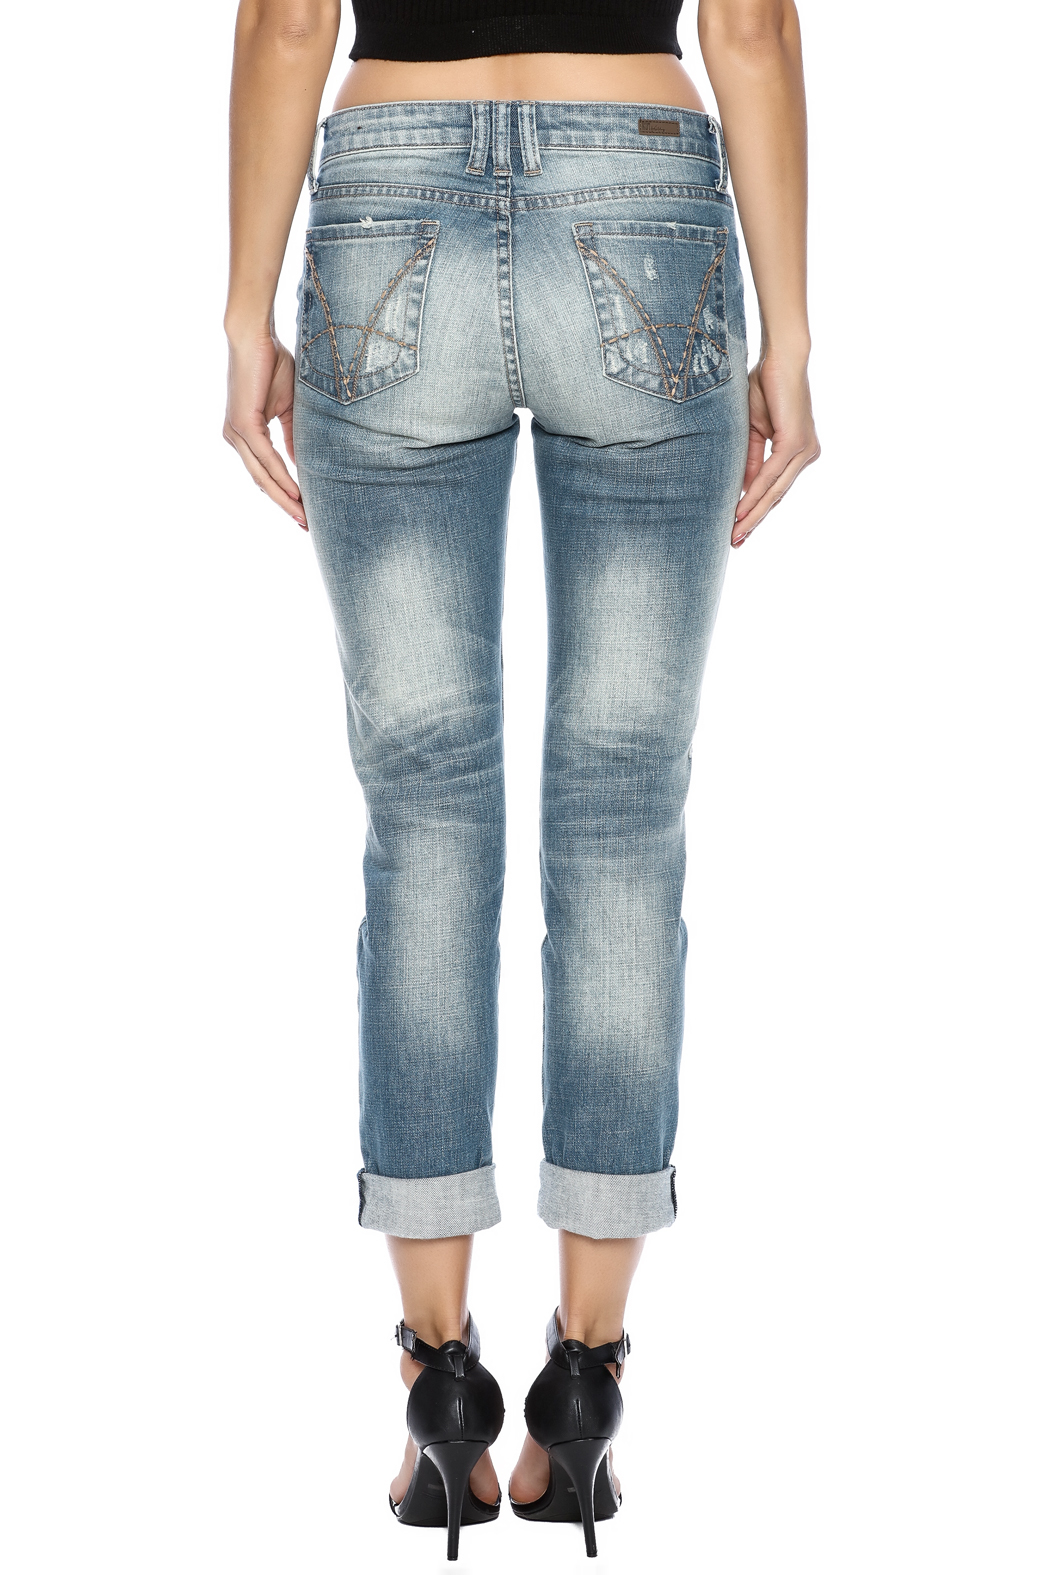 Kut from the Kloth Distressed Boyfriend Jean - Back Cropped Image